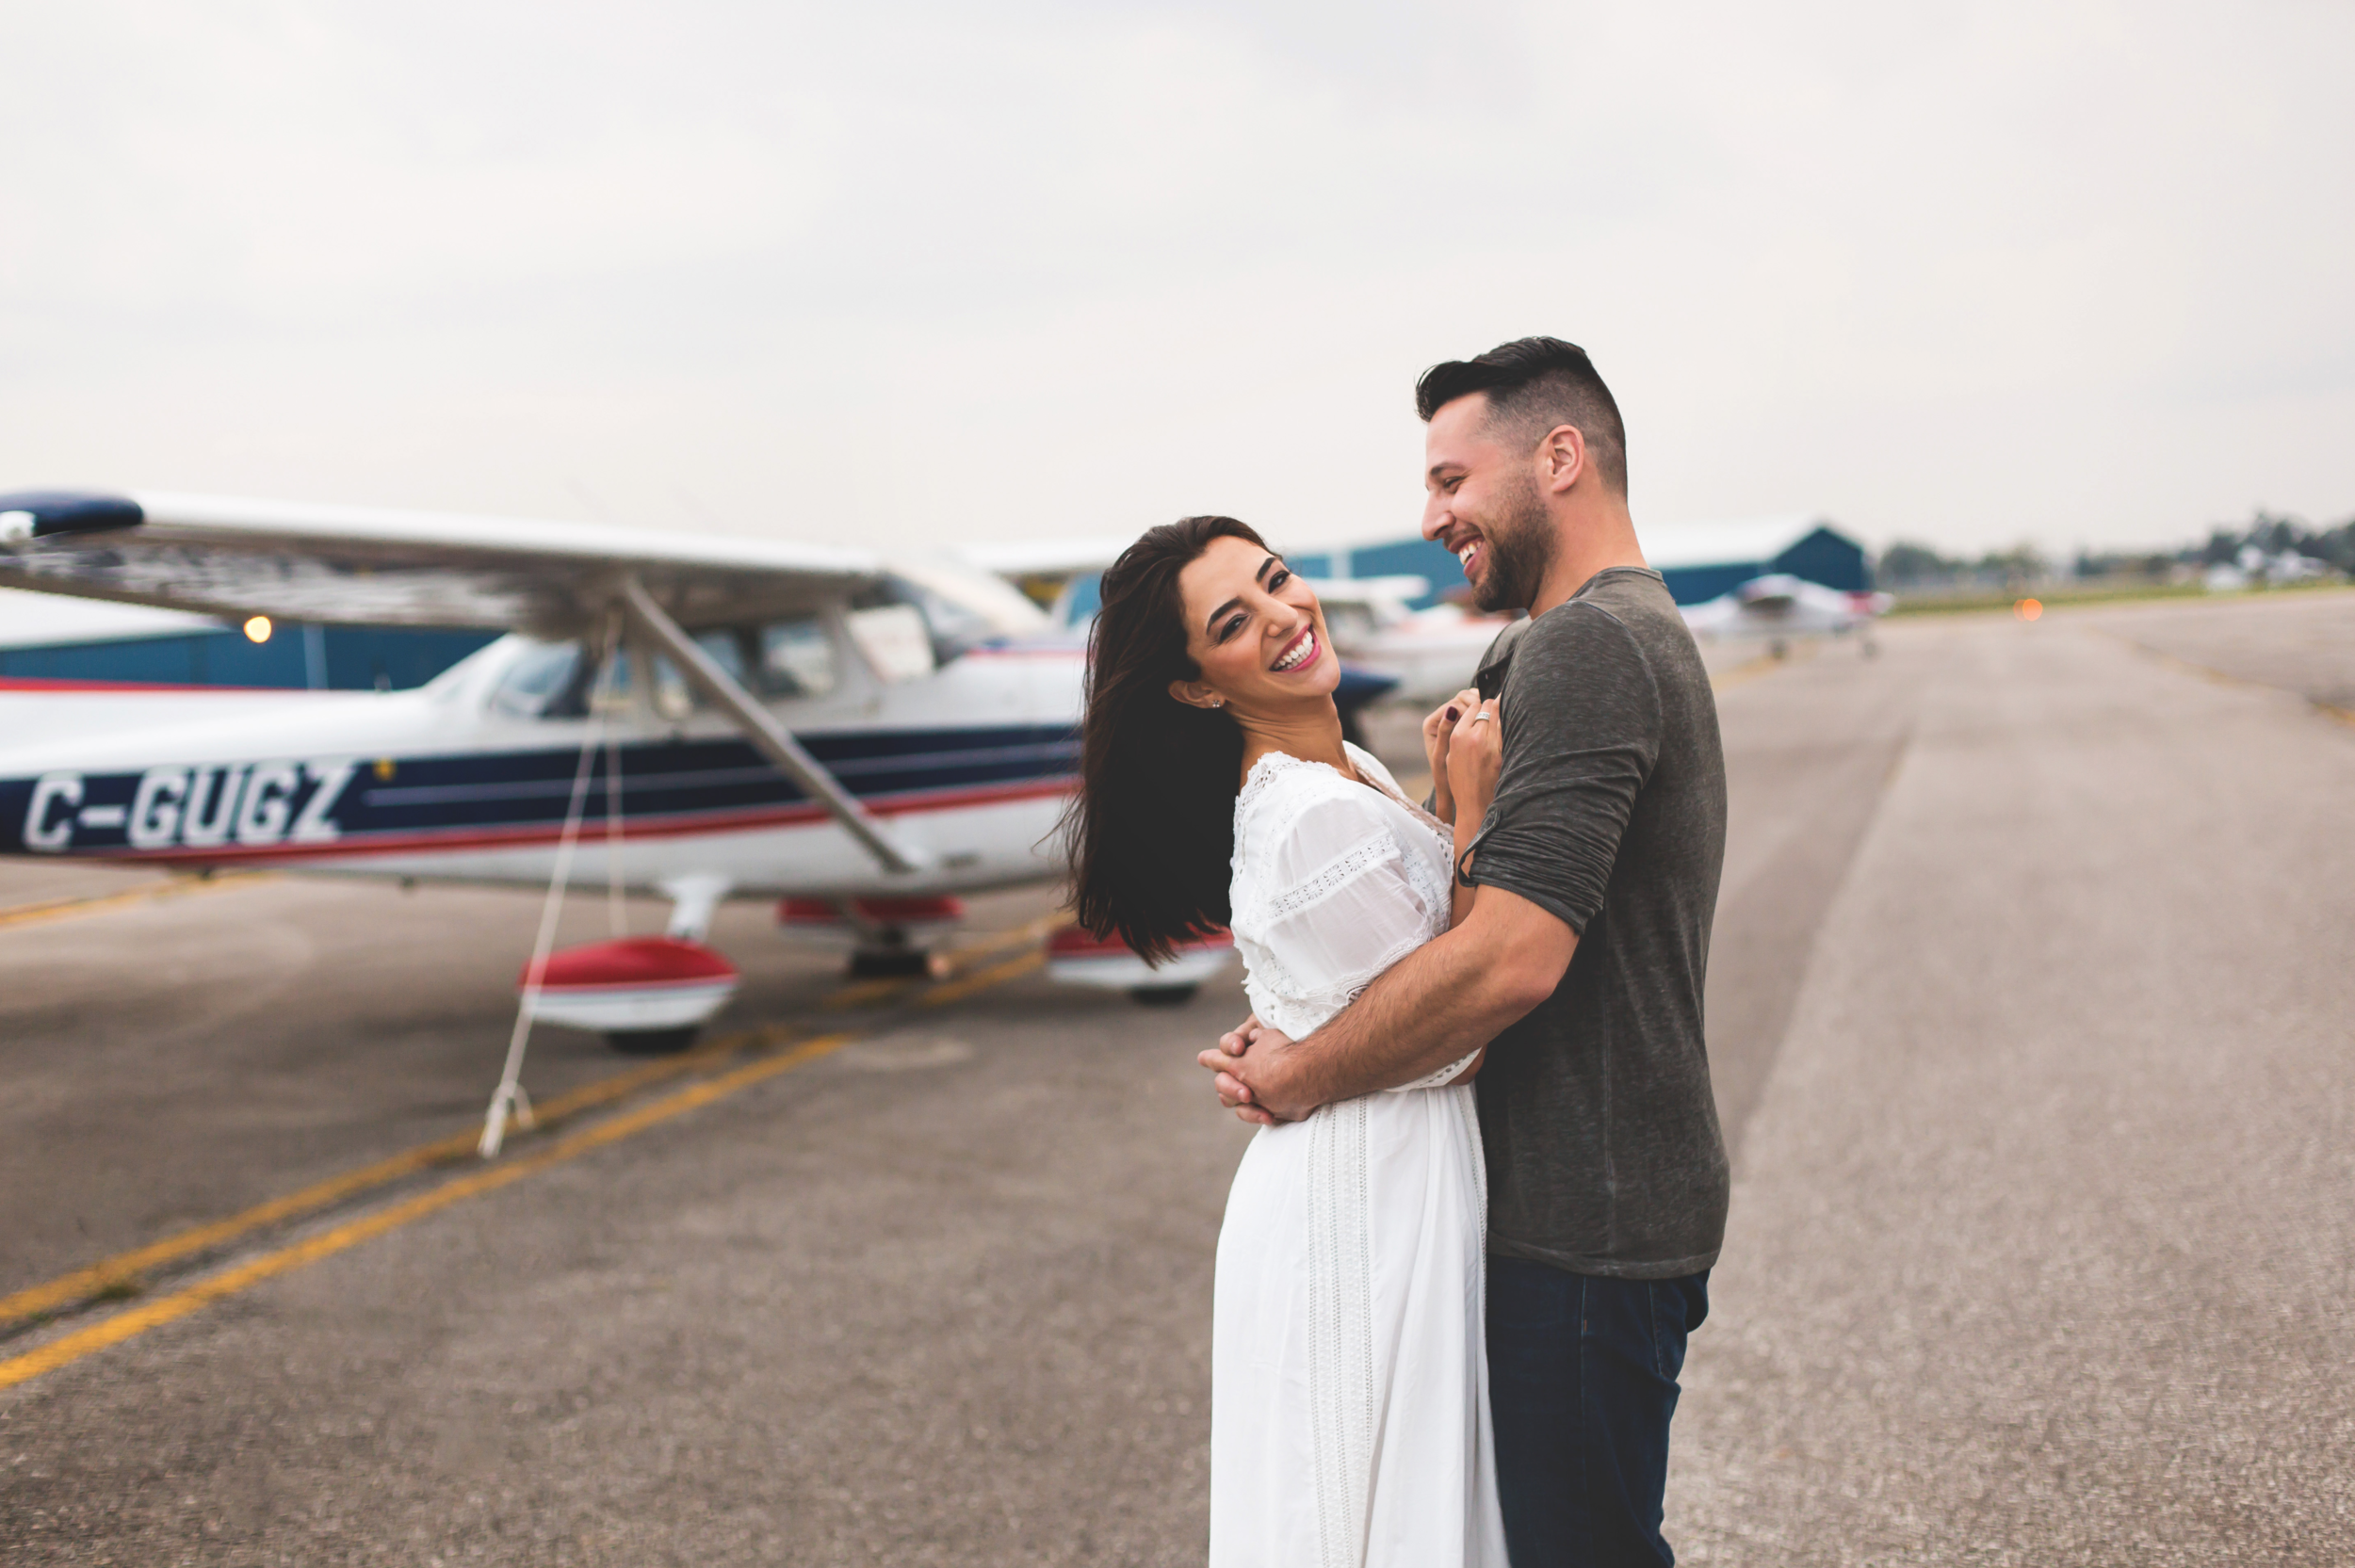 Engagement-Session-Hamilton-Burlington-Oakville-Toronto-Niagara-Wedding-Photographer-Engaged-Photography-Brantford-Airport-HamOnt-Engaged-Moments-by-Lauren-Photo-Image-32.png